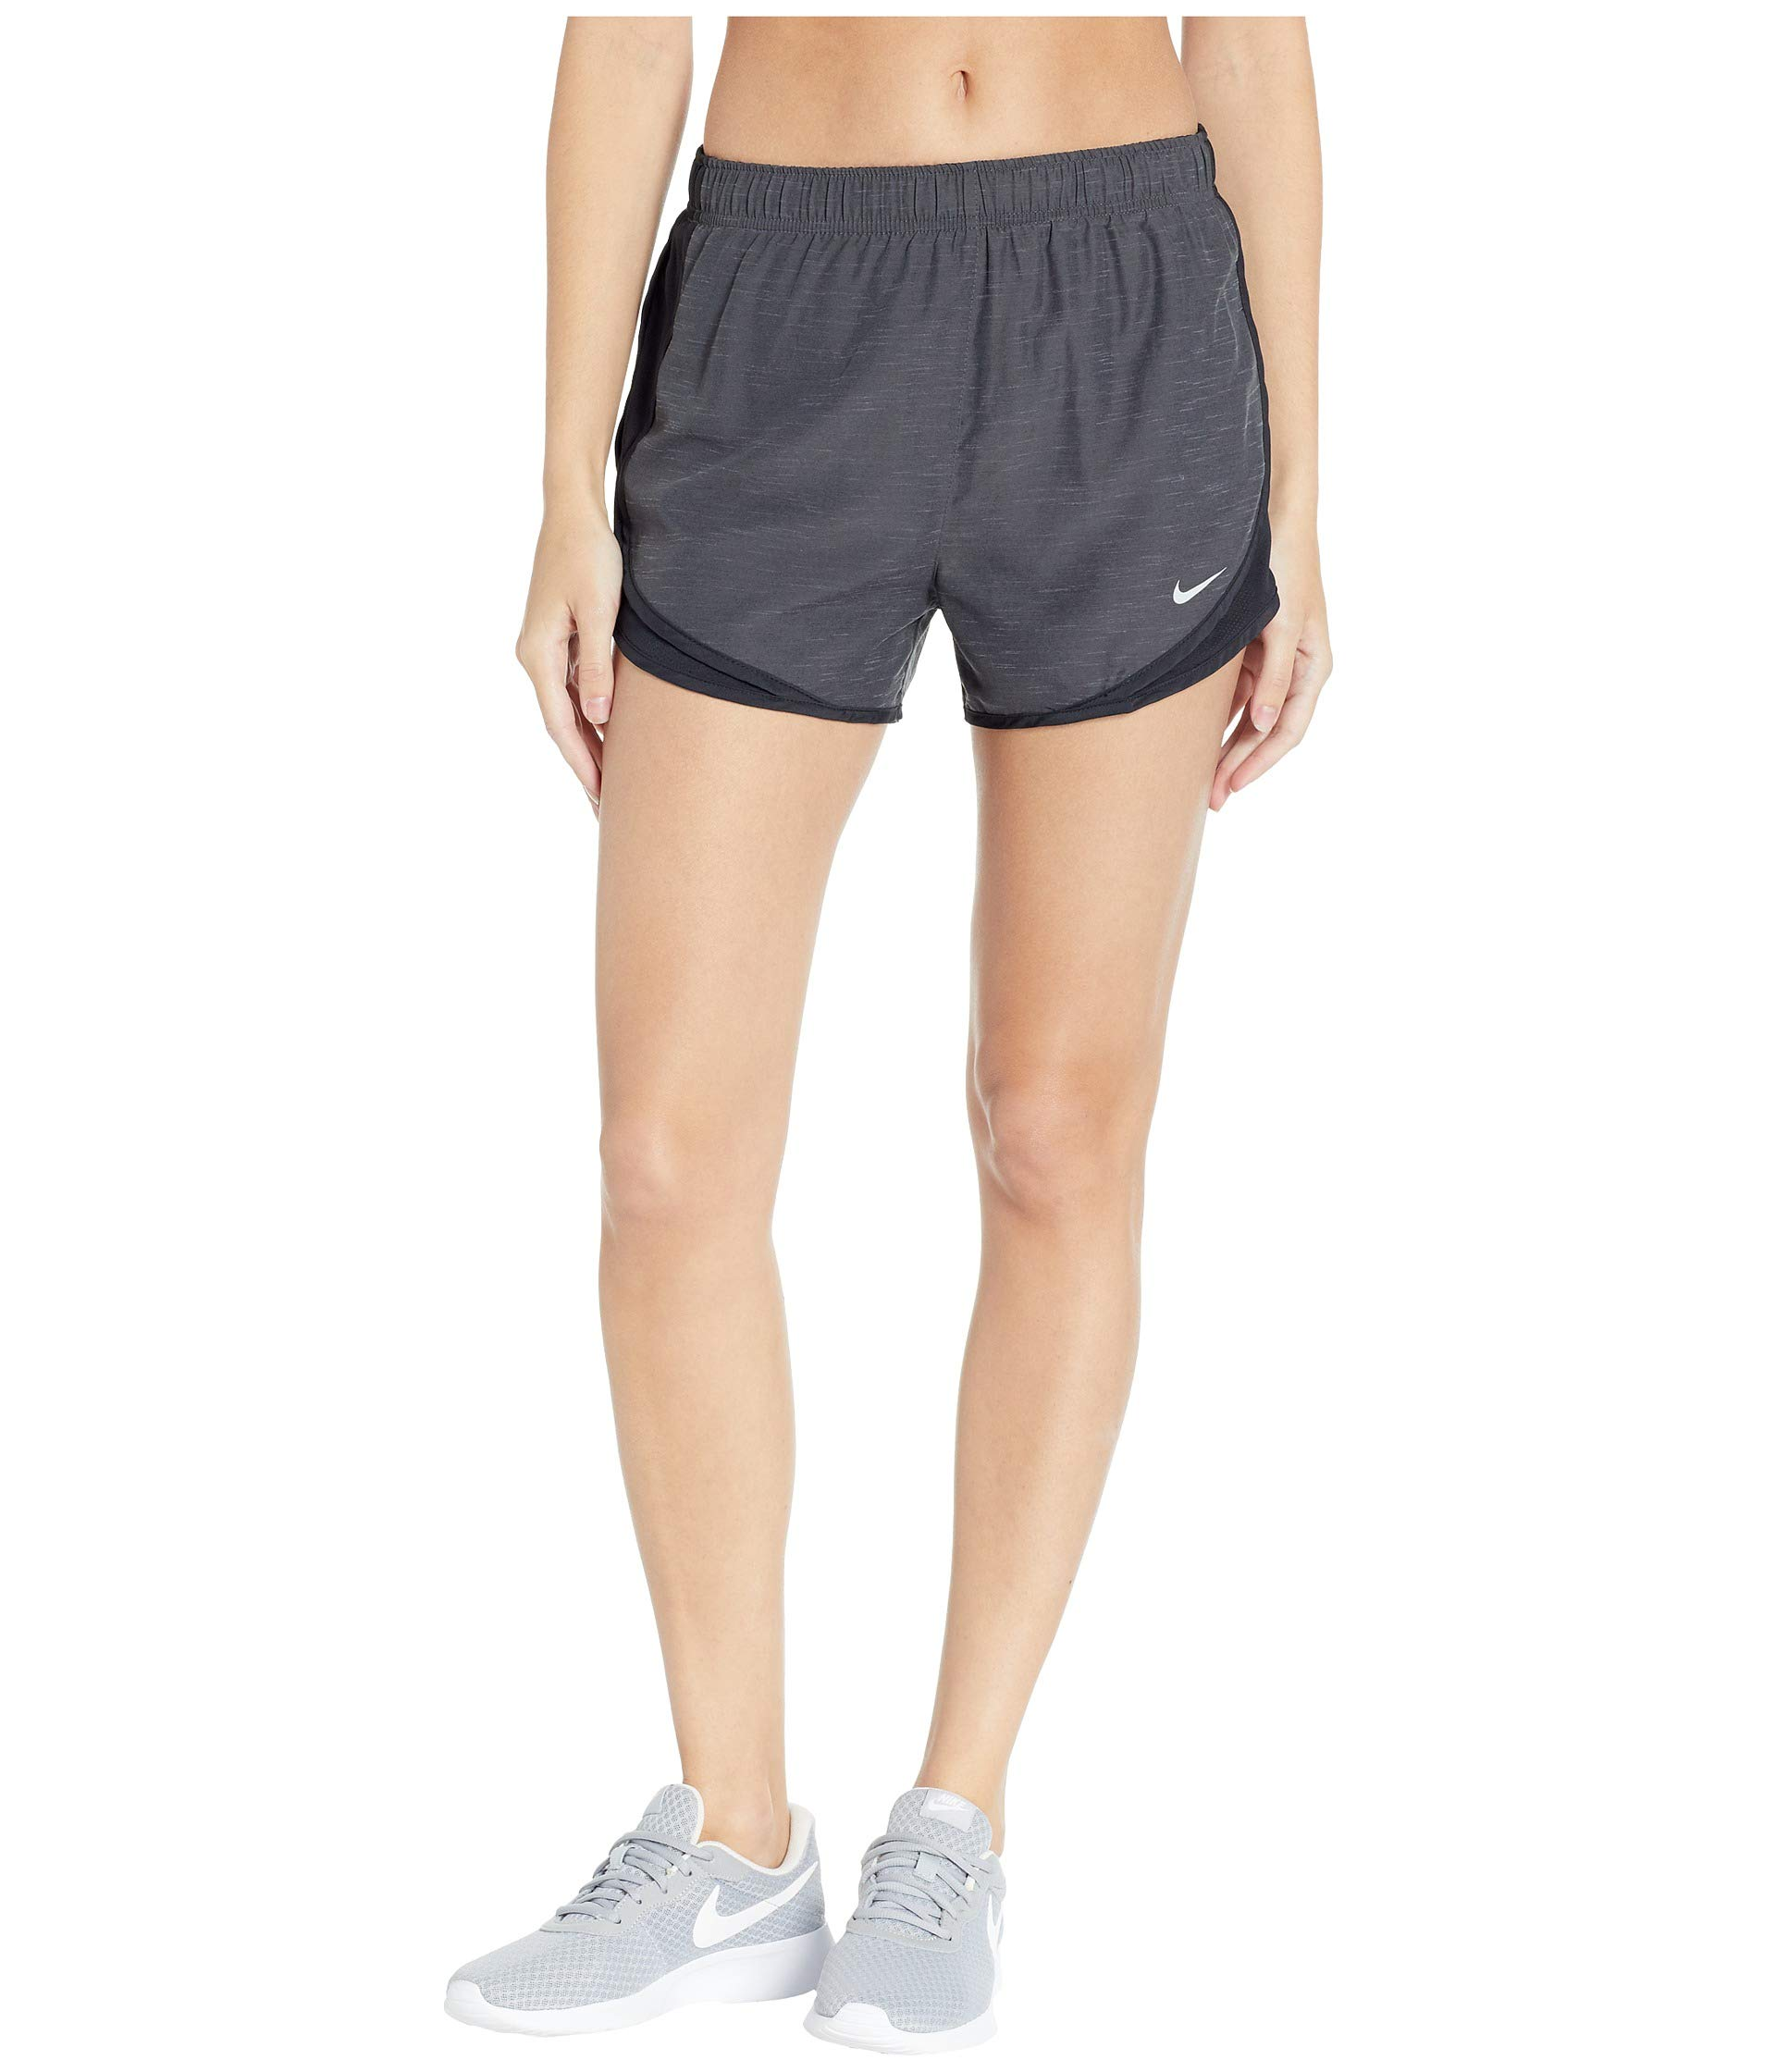 Nike Women's Dry Tempo Short Black Heather/Black/Black/Wolf Grey X-Small 3 by Nike (Image #1)